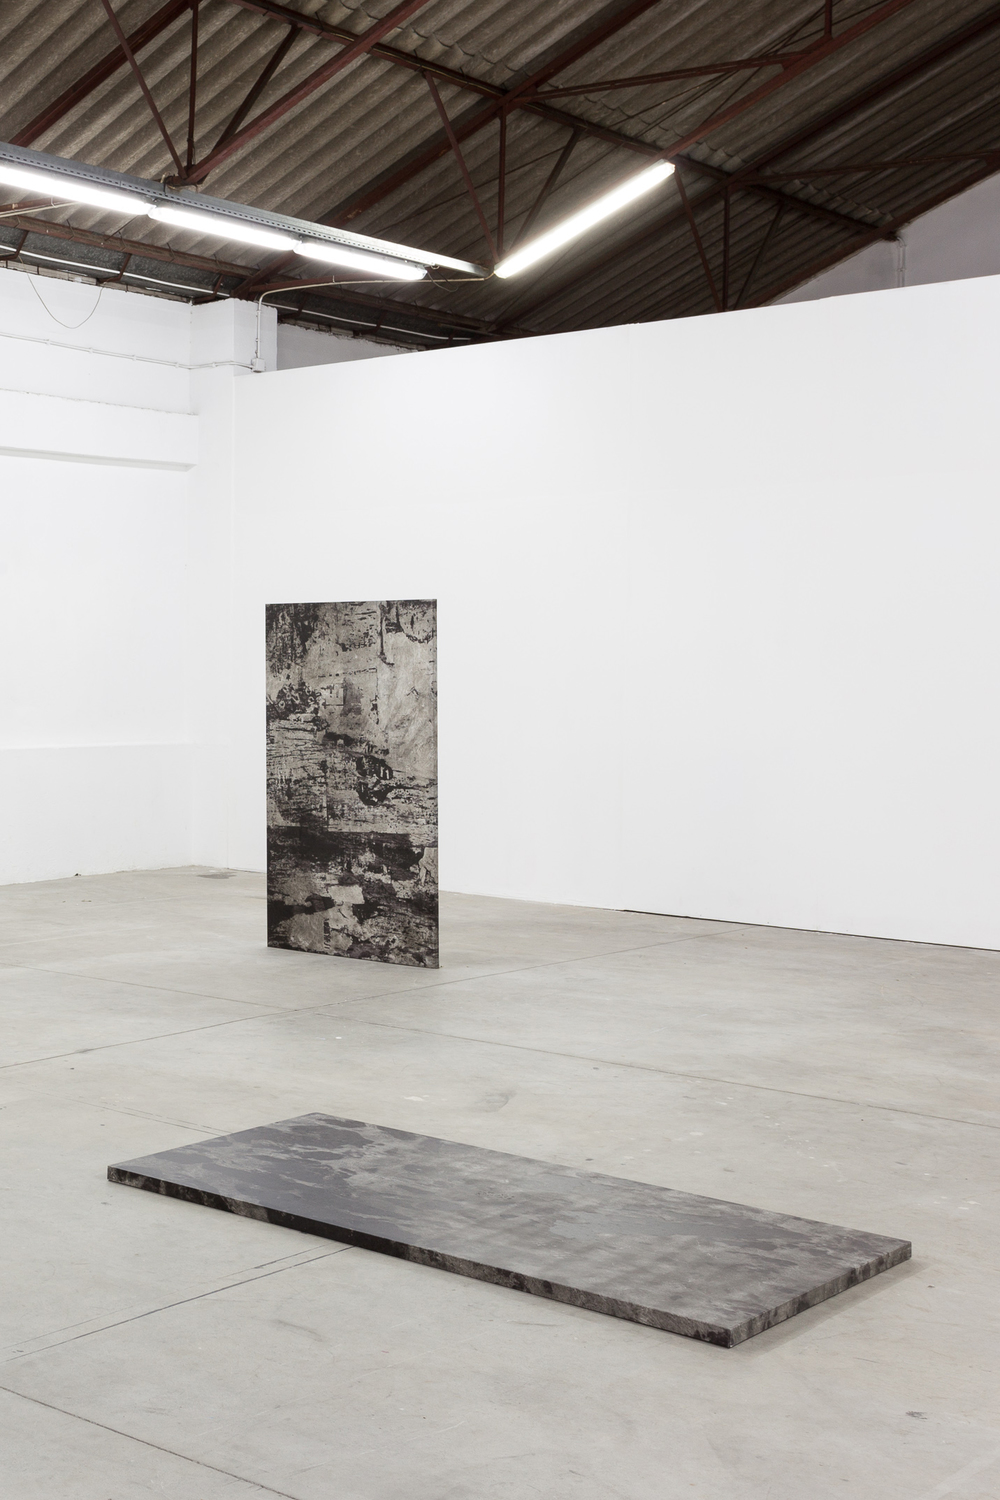 Installation view, Pedro Matos, Less Than Objects, Underdogs Gallery